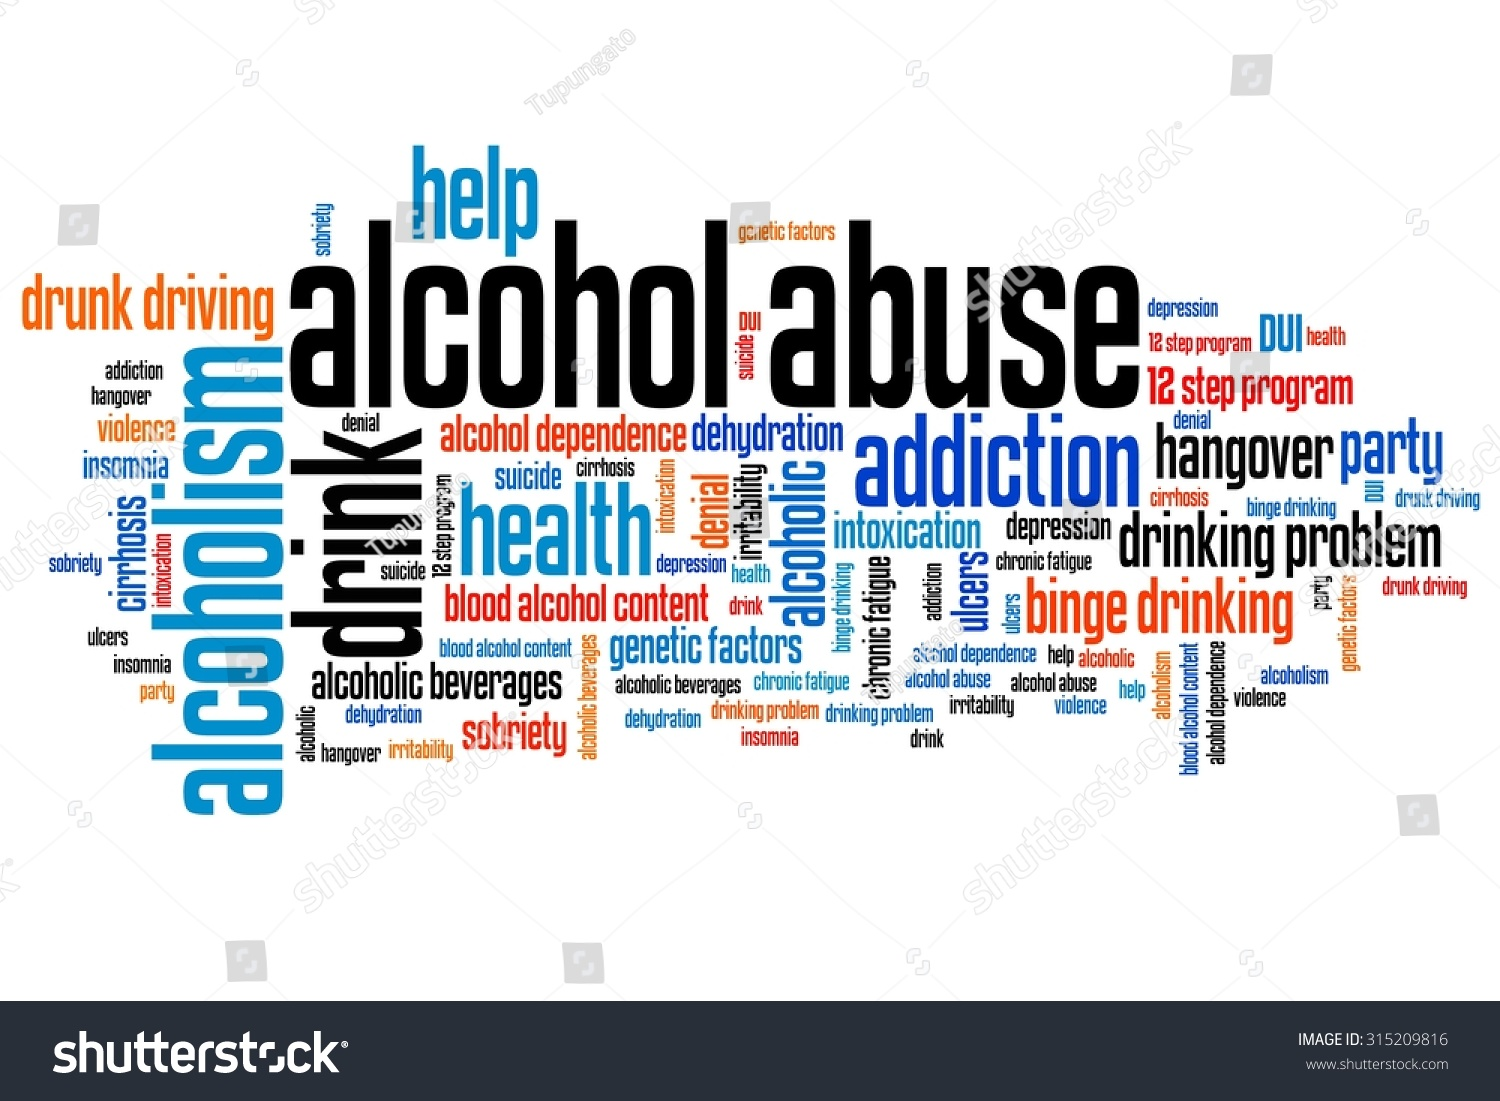 effects of alcoholism on children essay Essay on alcohol and its effects alcohol is a central nervous system depressant- it slows down the body's functions and its effects are similar to those of a general anaesthetic ethyl alcohol (ethanol) is the active ingredient in all alcoholic drinks.